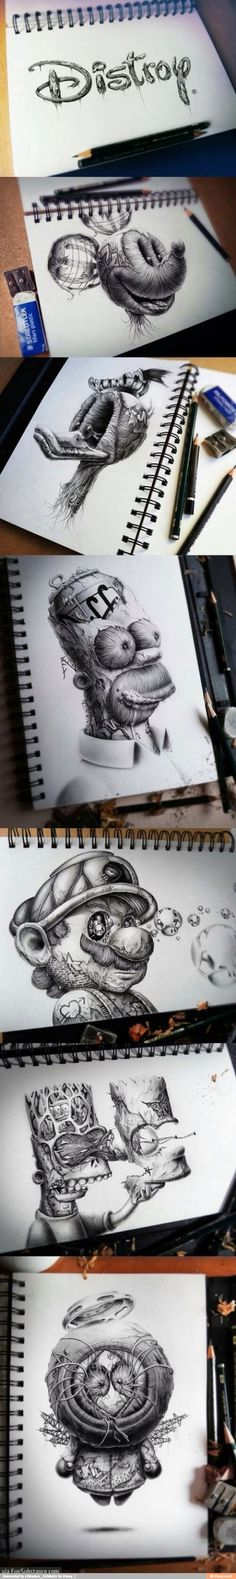 Distroy by PEZ // funny pictures - funny photos - funny images - funny pics - funny quotes - (Cool Art Drawings) Amazing Drawings, Cool Drawings, Amazing Art, Creepy Drawings, Awesome, Digital Art Illustration, Tatoo Art, Pencil Art, Pencil Shading